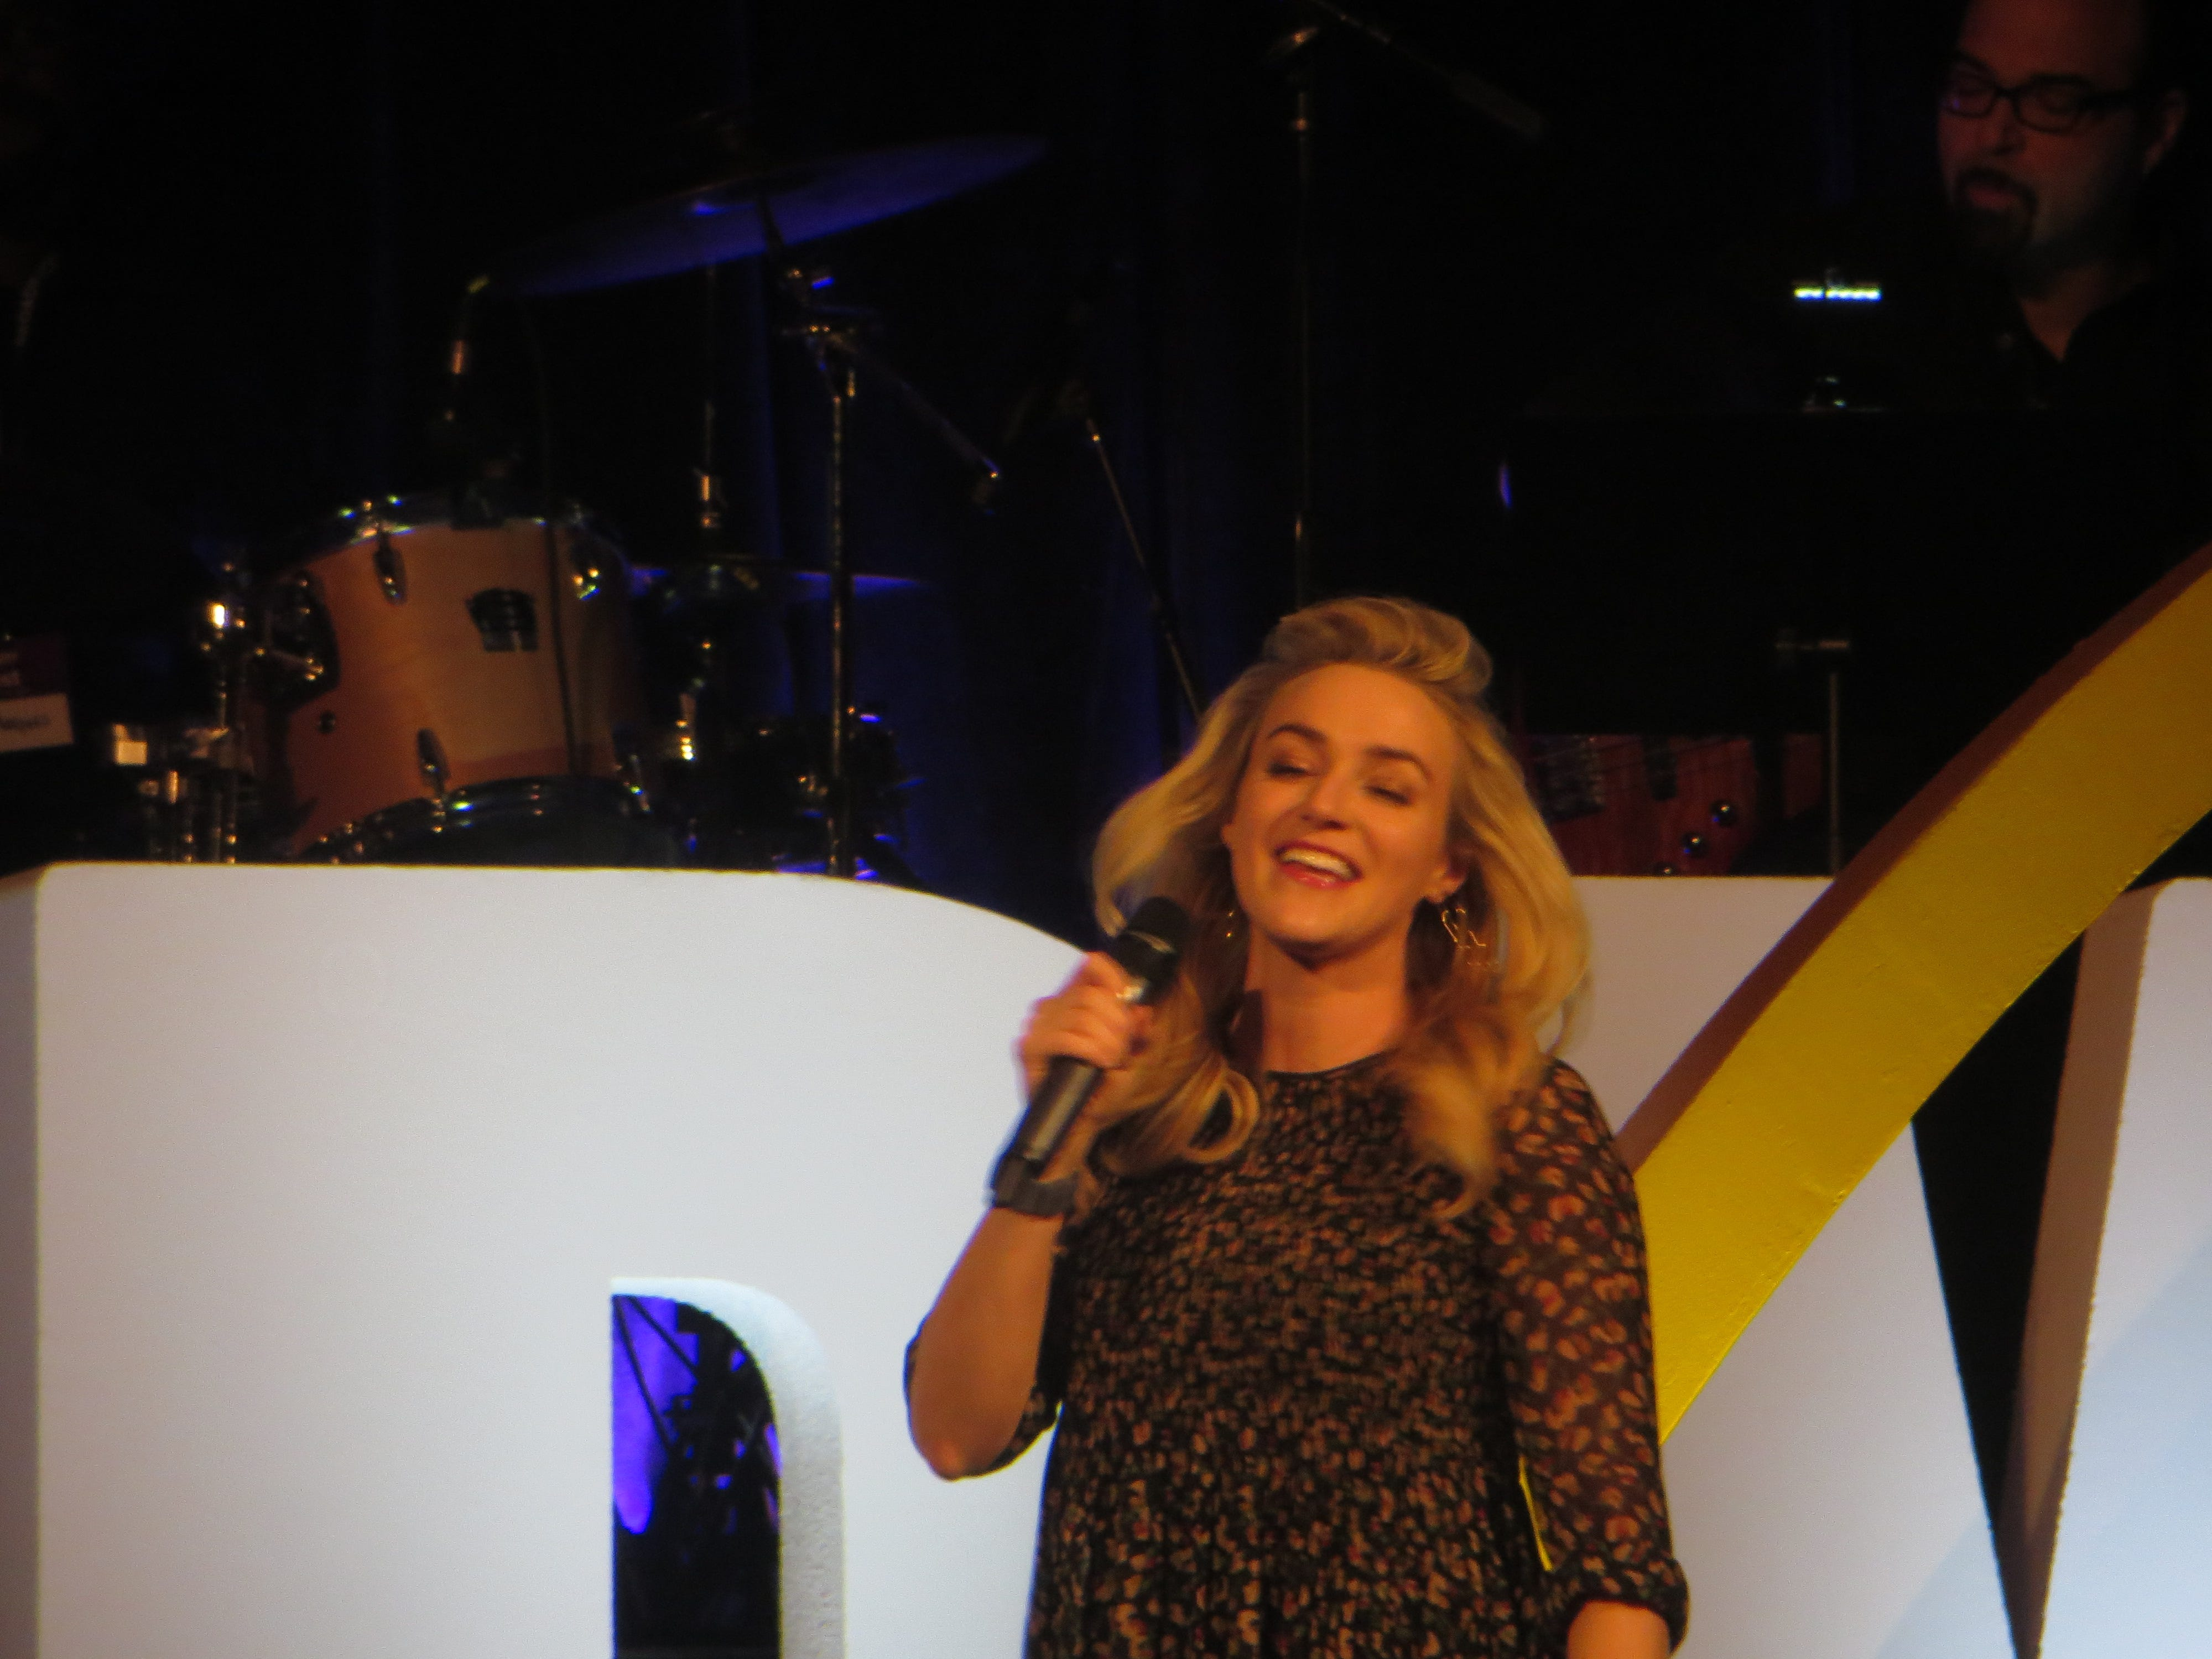 Betsy Wolfe performs at BroadwayCon Jukebox at BroadwayCon 2019, held Jan. 11 to 13, 2019, at the New York Hilton Midtown in Manhattan.